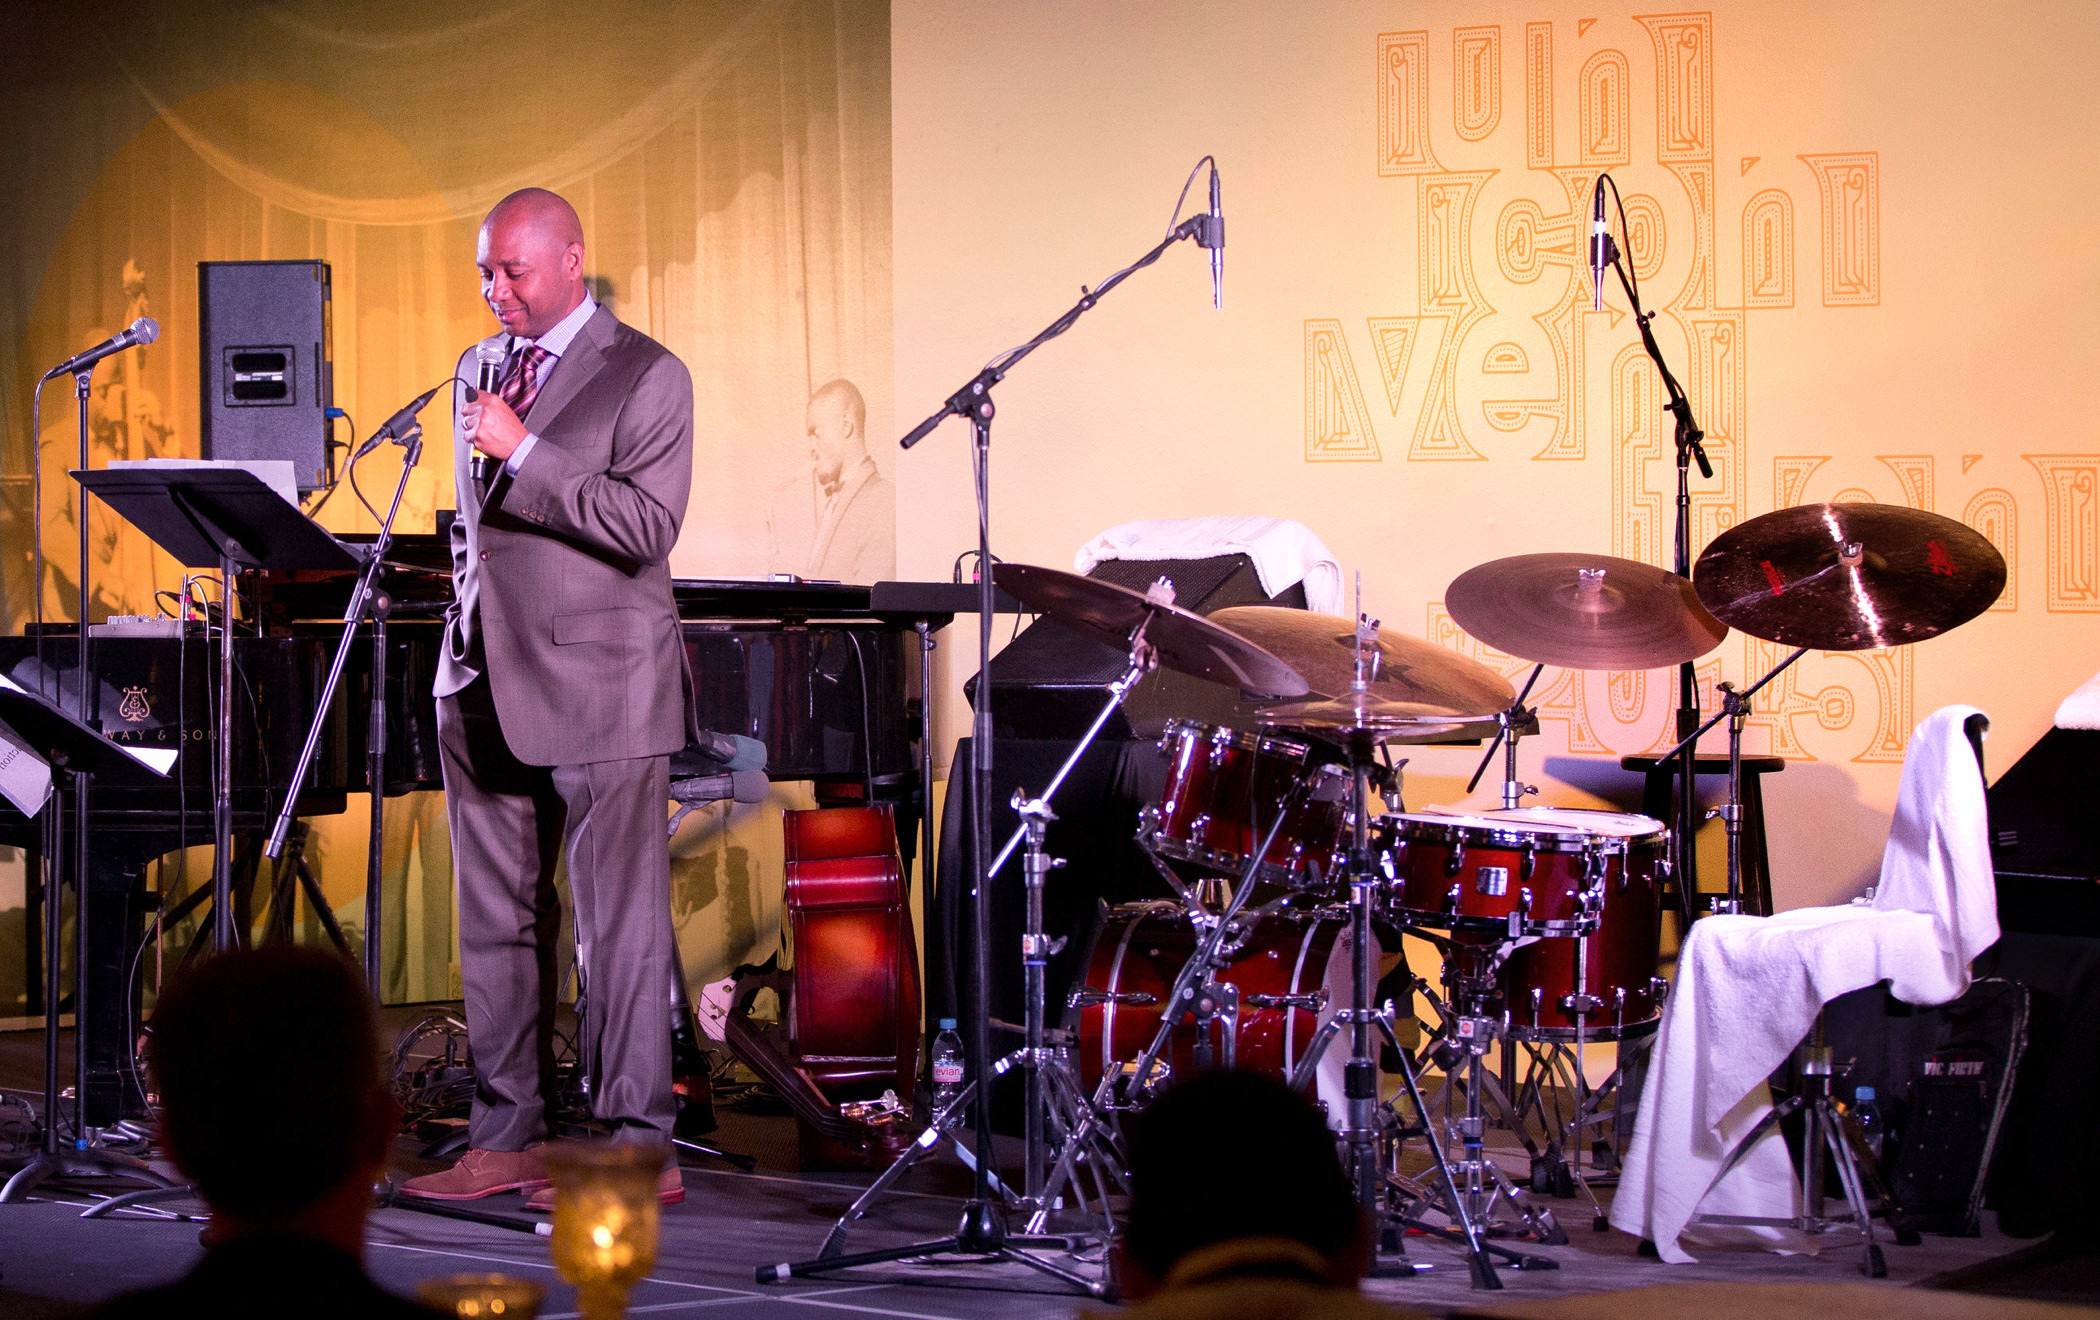 Branford Marsalis speaks from the bandstand at a 2015 KCG Uncon client event dinner.